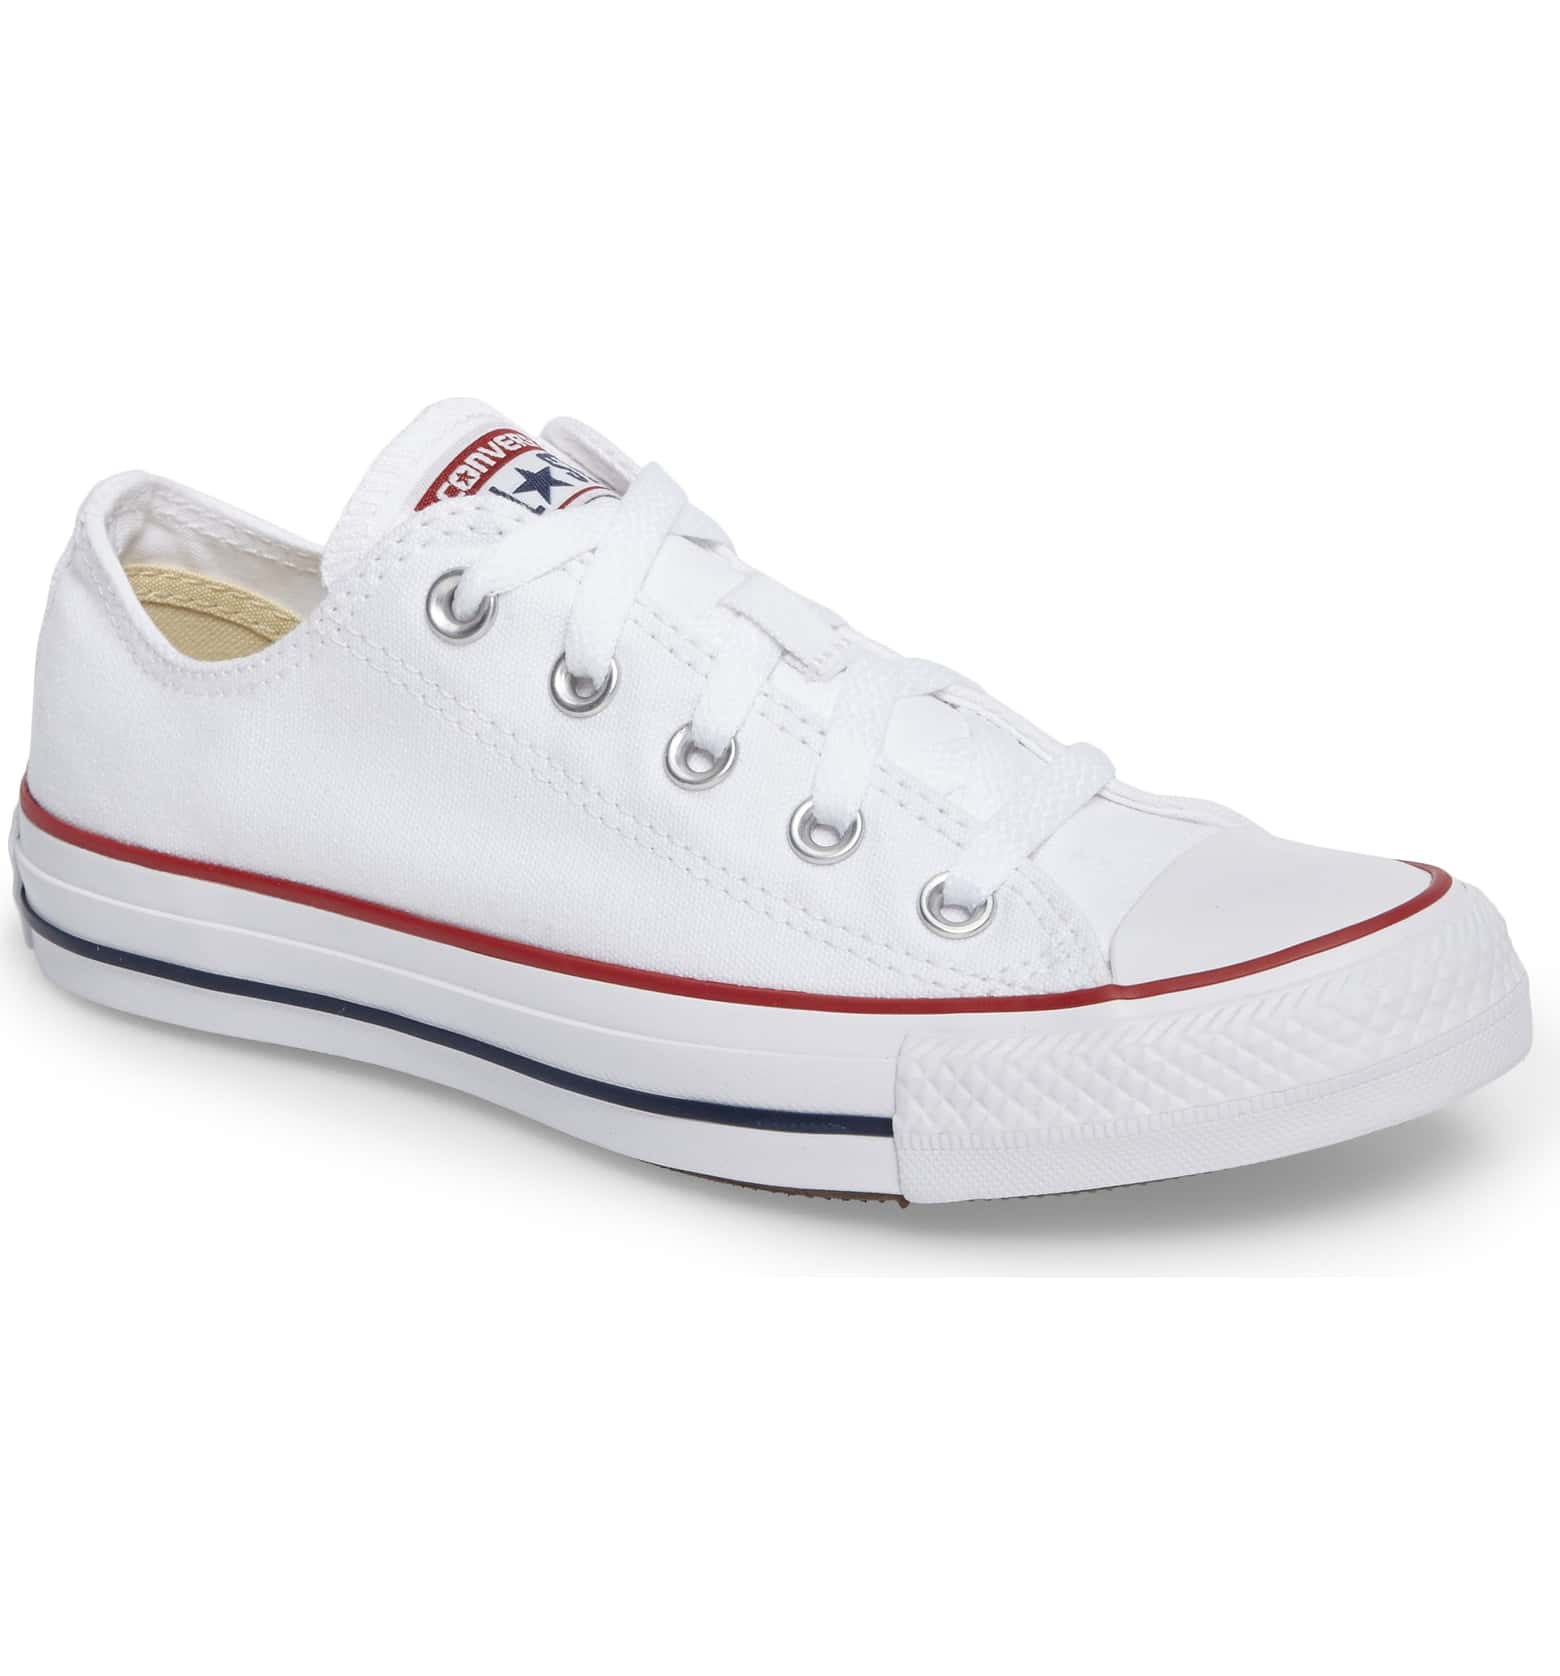 Oscars red carpet shoes: Converse Chuck Taylor Low Top Sneaker